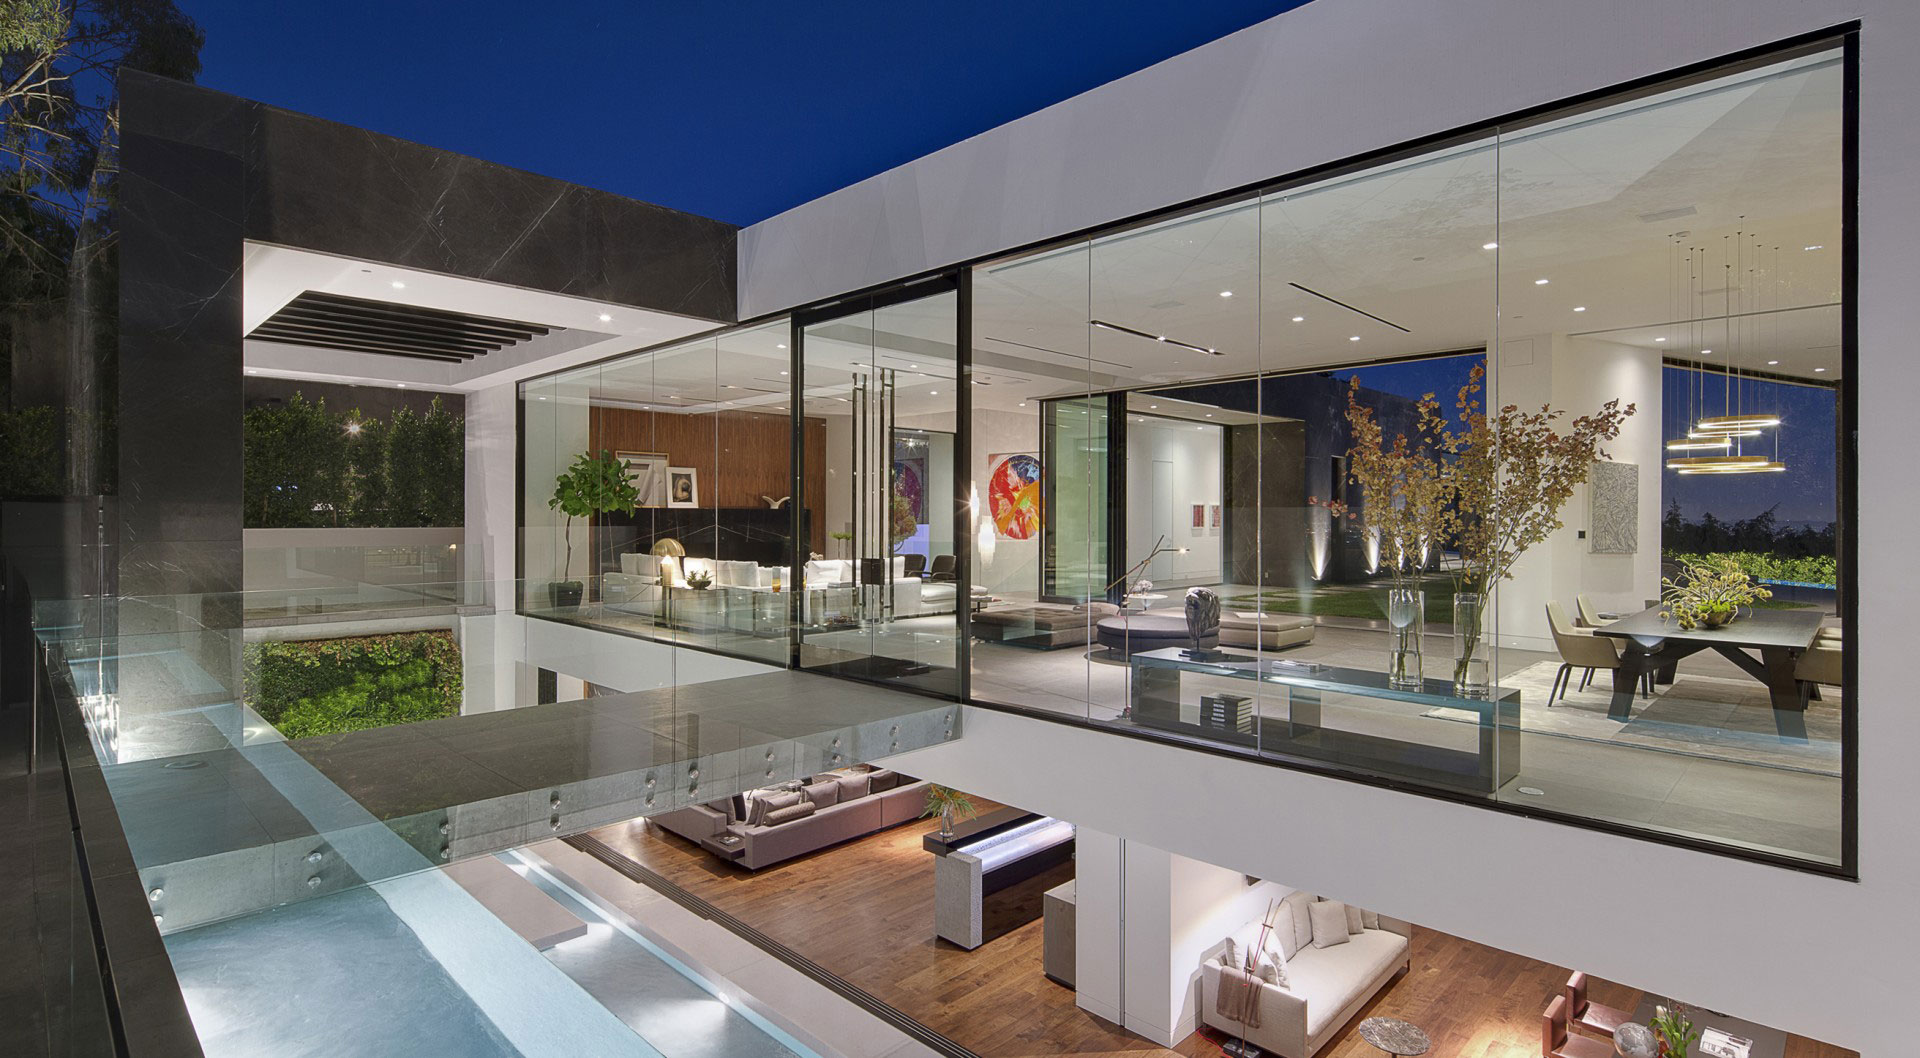 two-story-glass-house  Interior Design Ideas. - ^